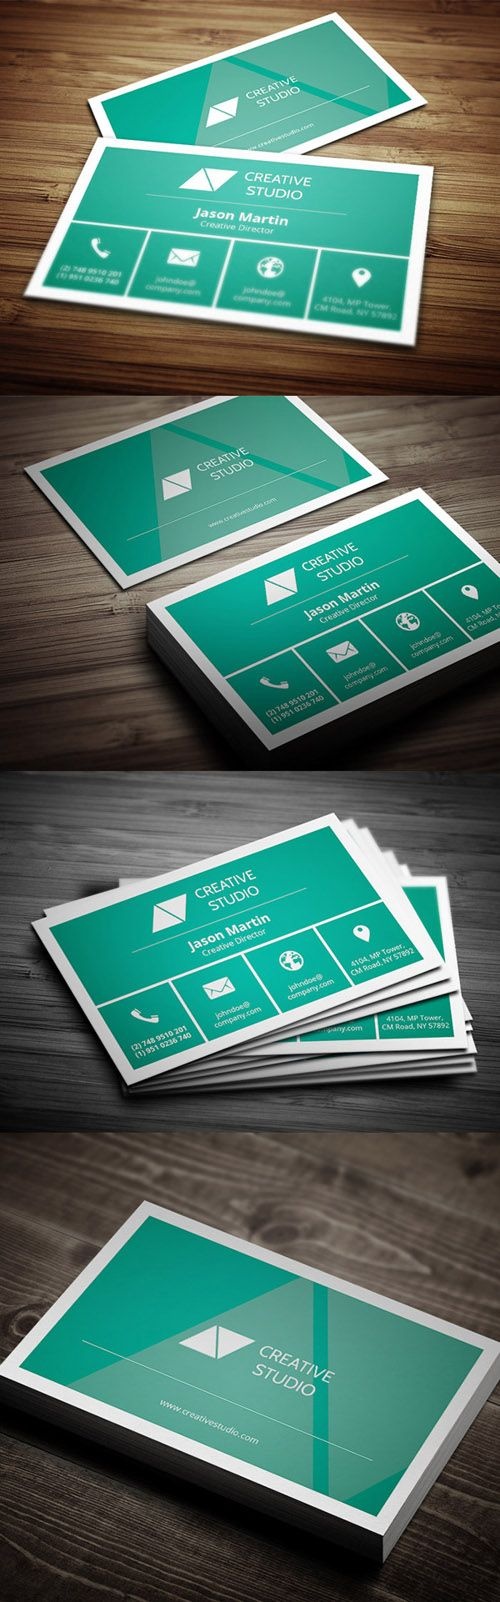 30 modern print ready business cards design businesscard 30 modern print ready business cards design businesscard printready premiumtemplates colourmoves